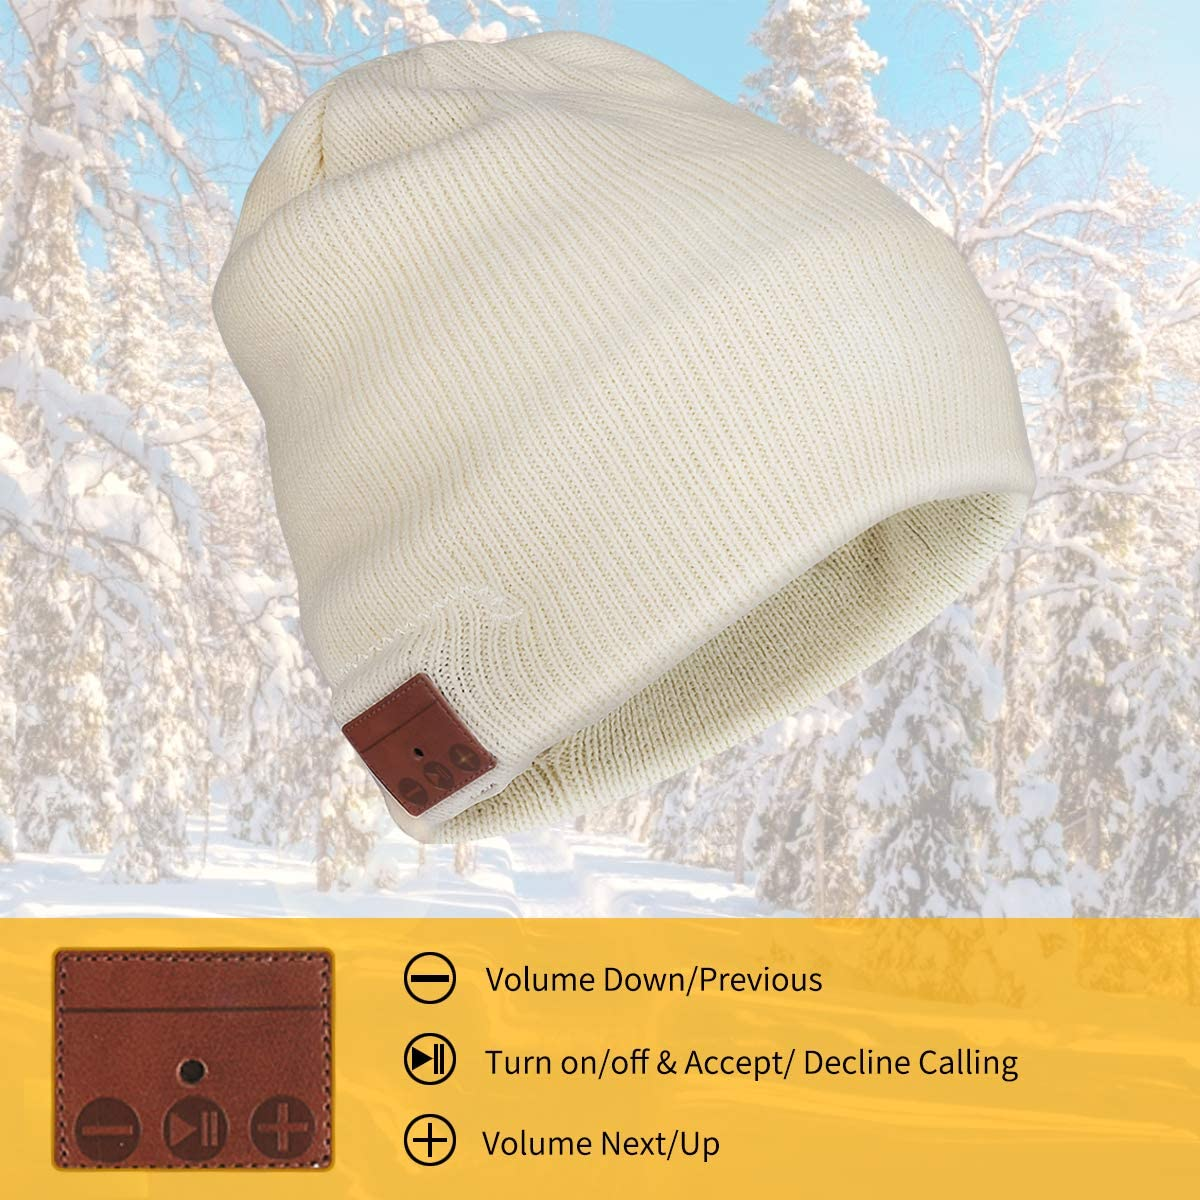 INTSUN Beany Hat with Wireless Stereo Headphones, 4.2 Bluetooth Knit Beanie Hats for Men Women Rechargeable Battery Hat Speaker Mic for Outdoor Sports Running Skiing Skating Hiking